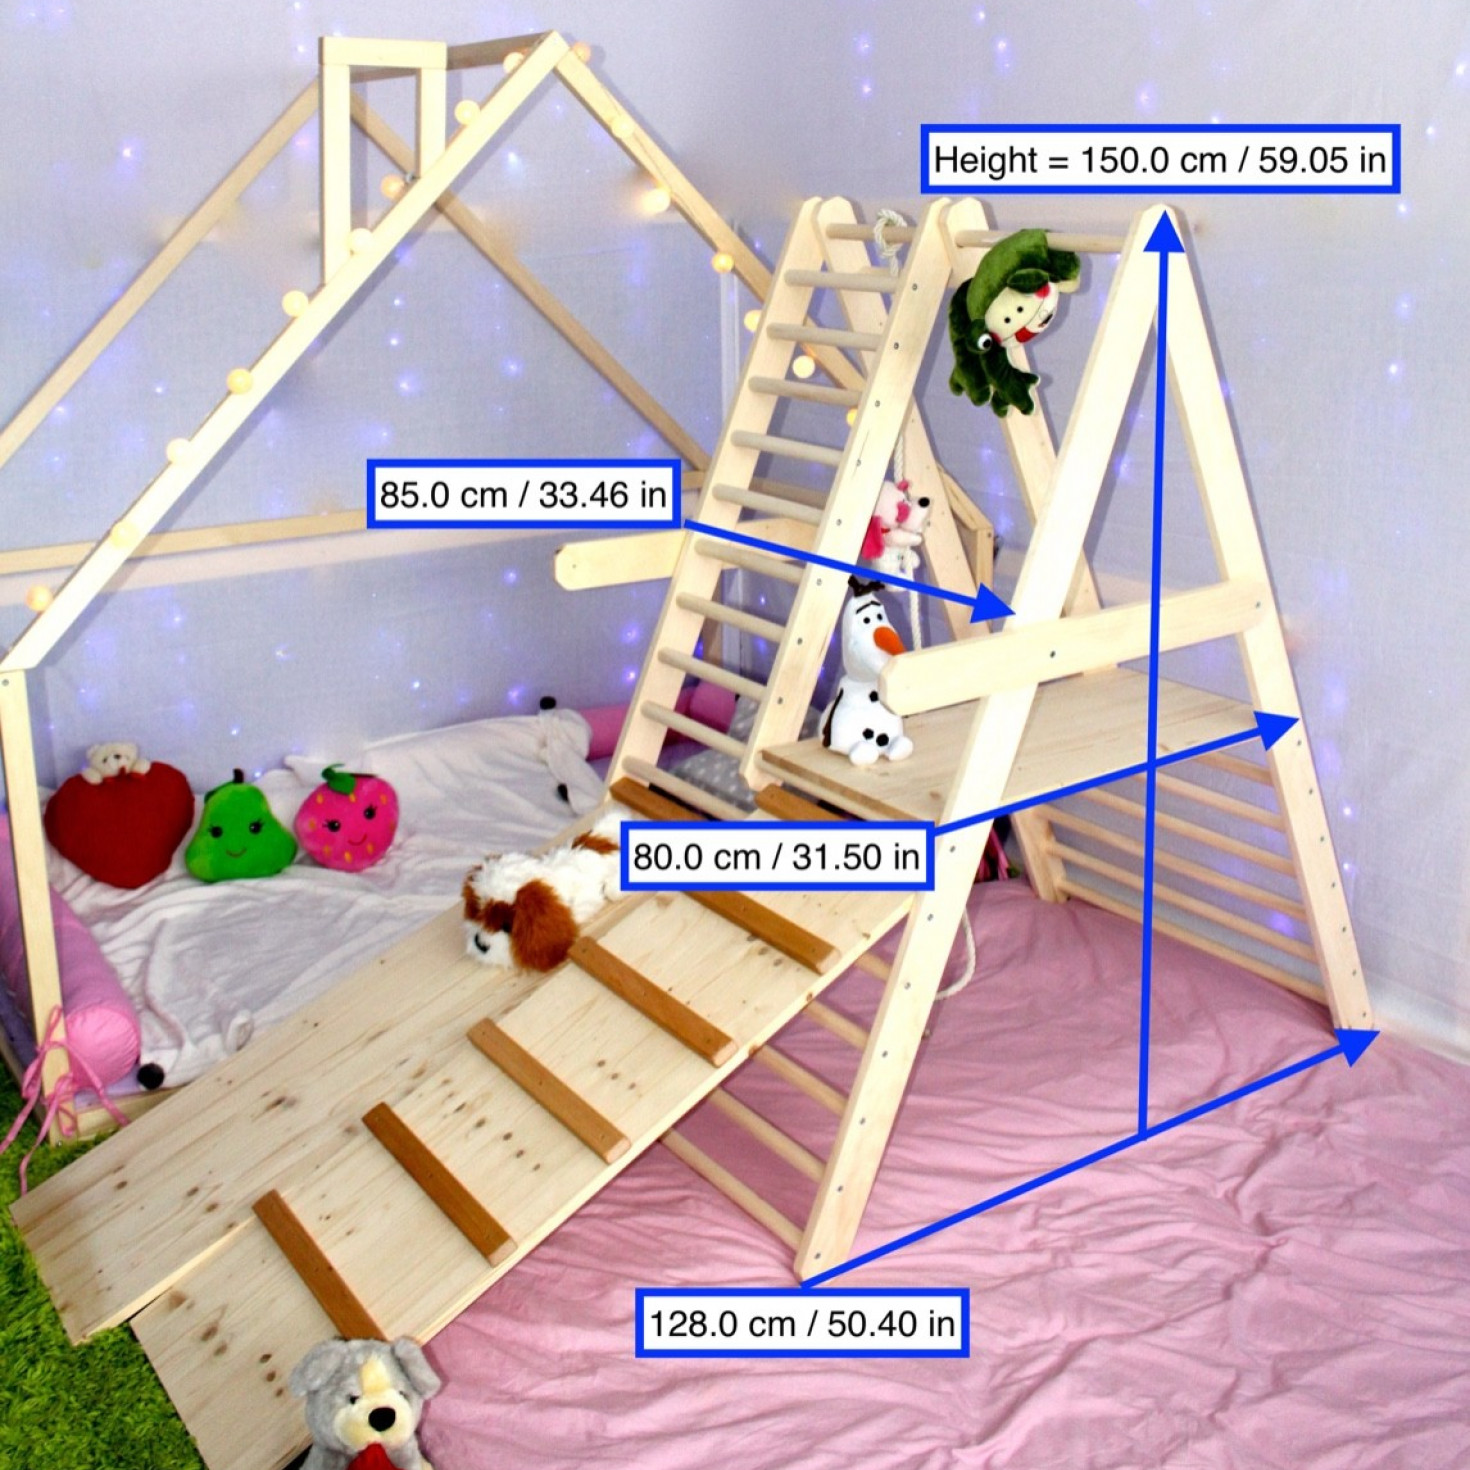 Dimensions of a climbing ladder and its accesories